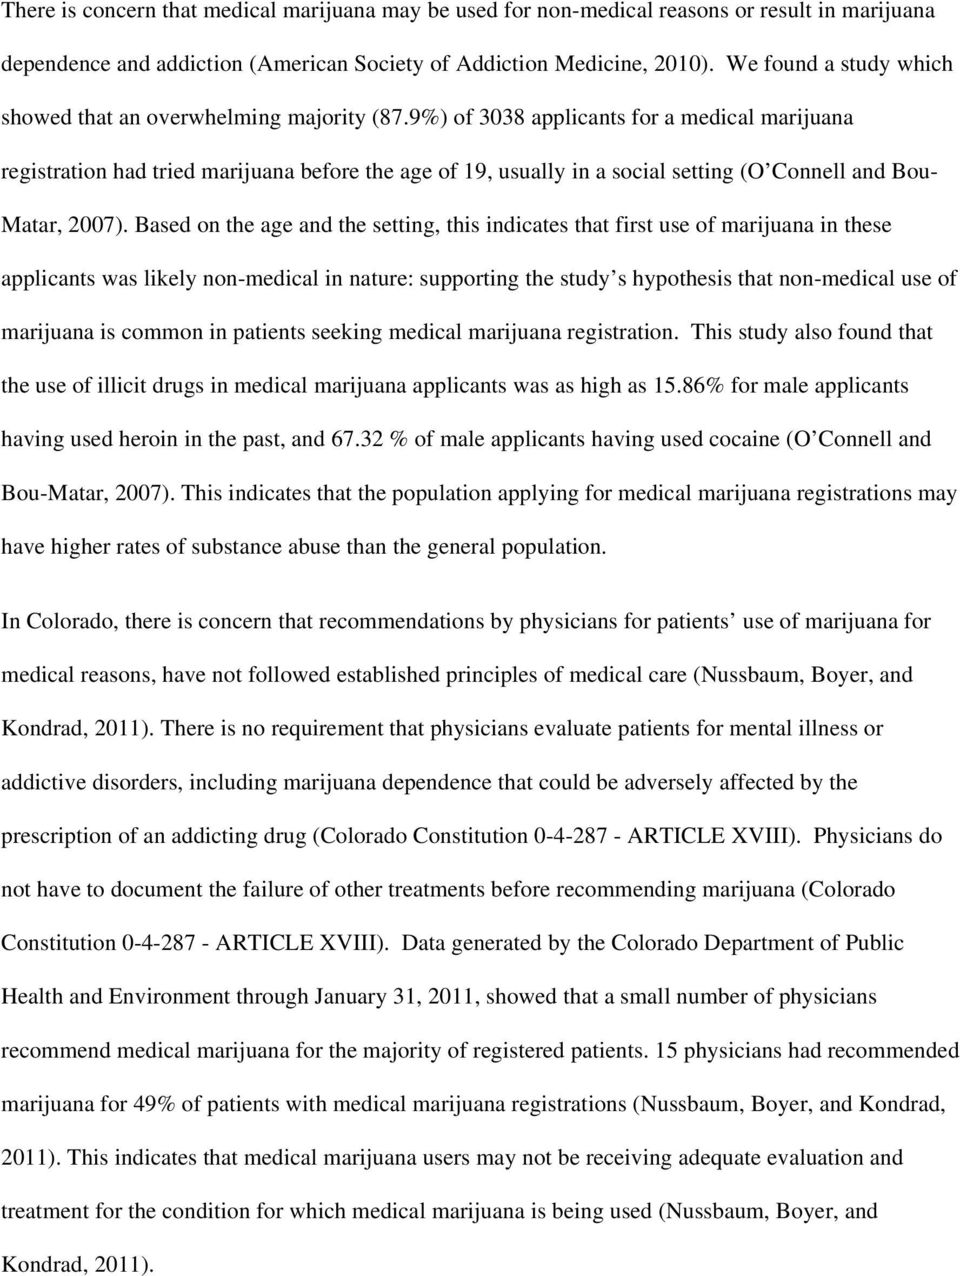 9%) of 3038 applicants for a medical marijuana registration had tried marijuana before the age of 19, usually in a social setting (O Connell and Bou- Matar, 2007).